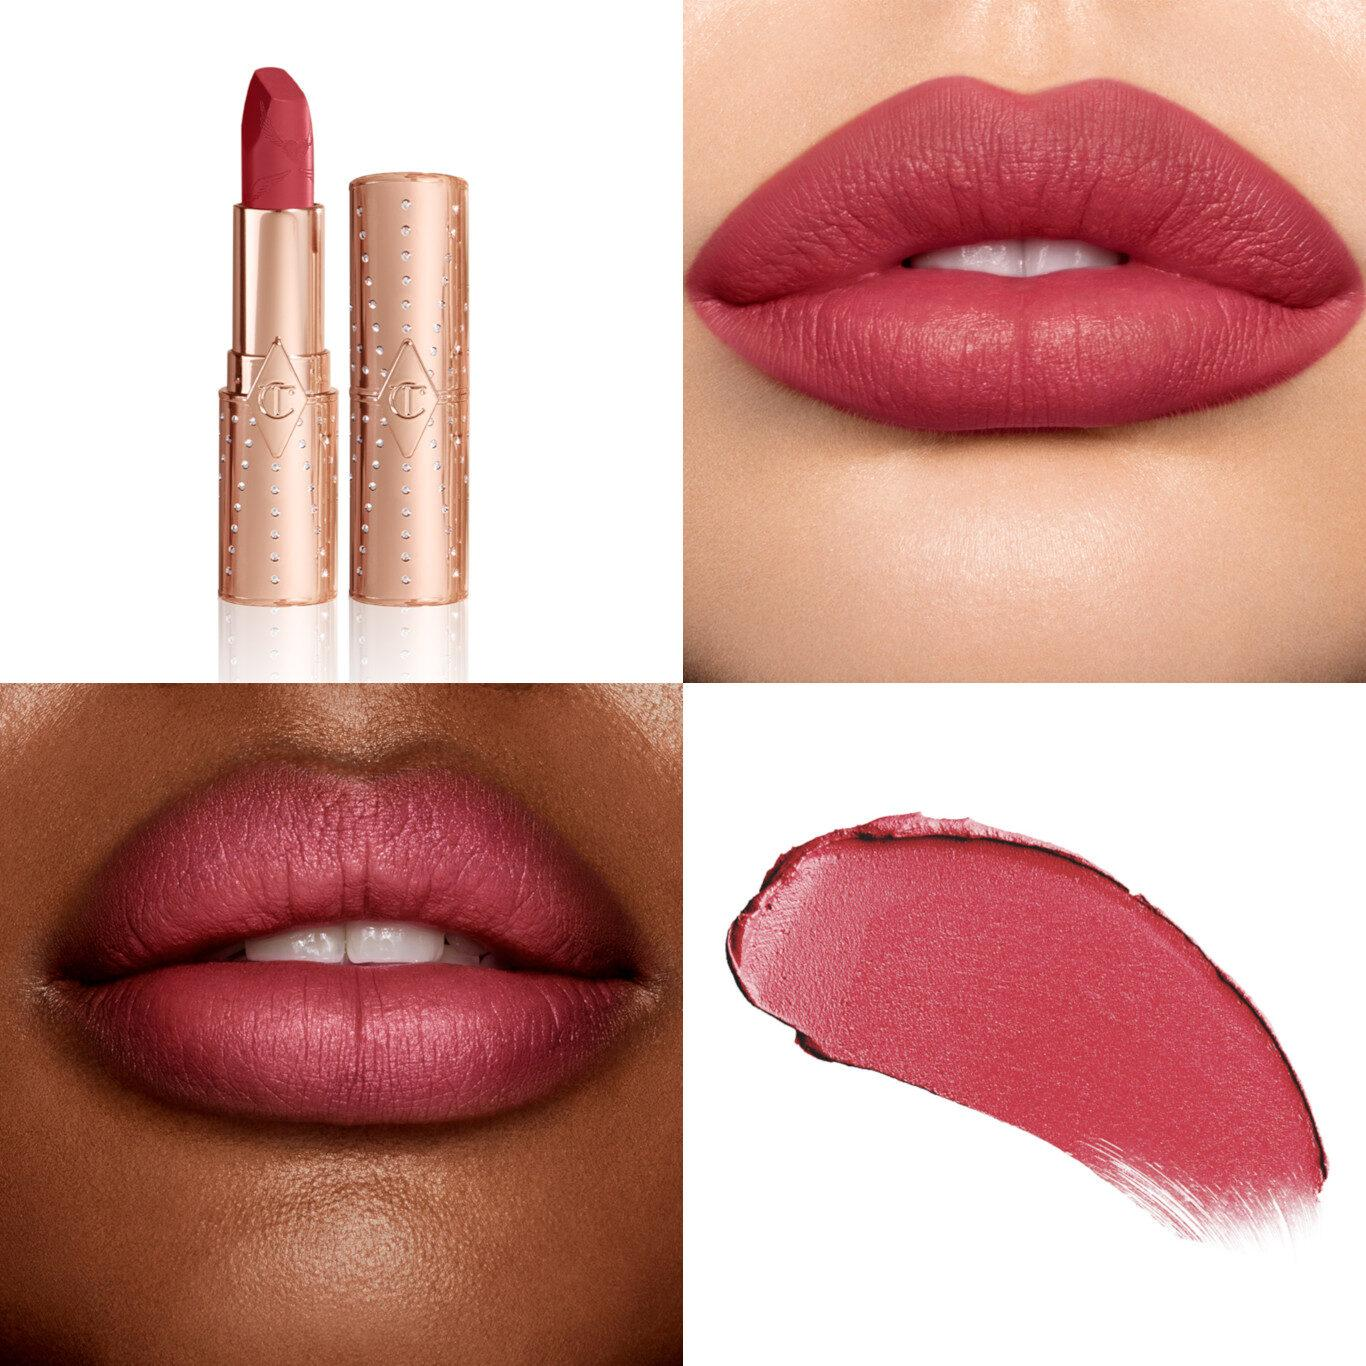 Charlotte Tilbury Look Of Love Lipstick in First Dance